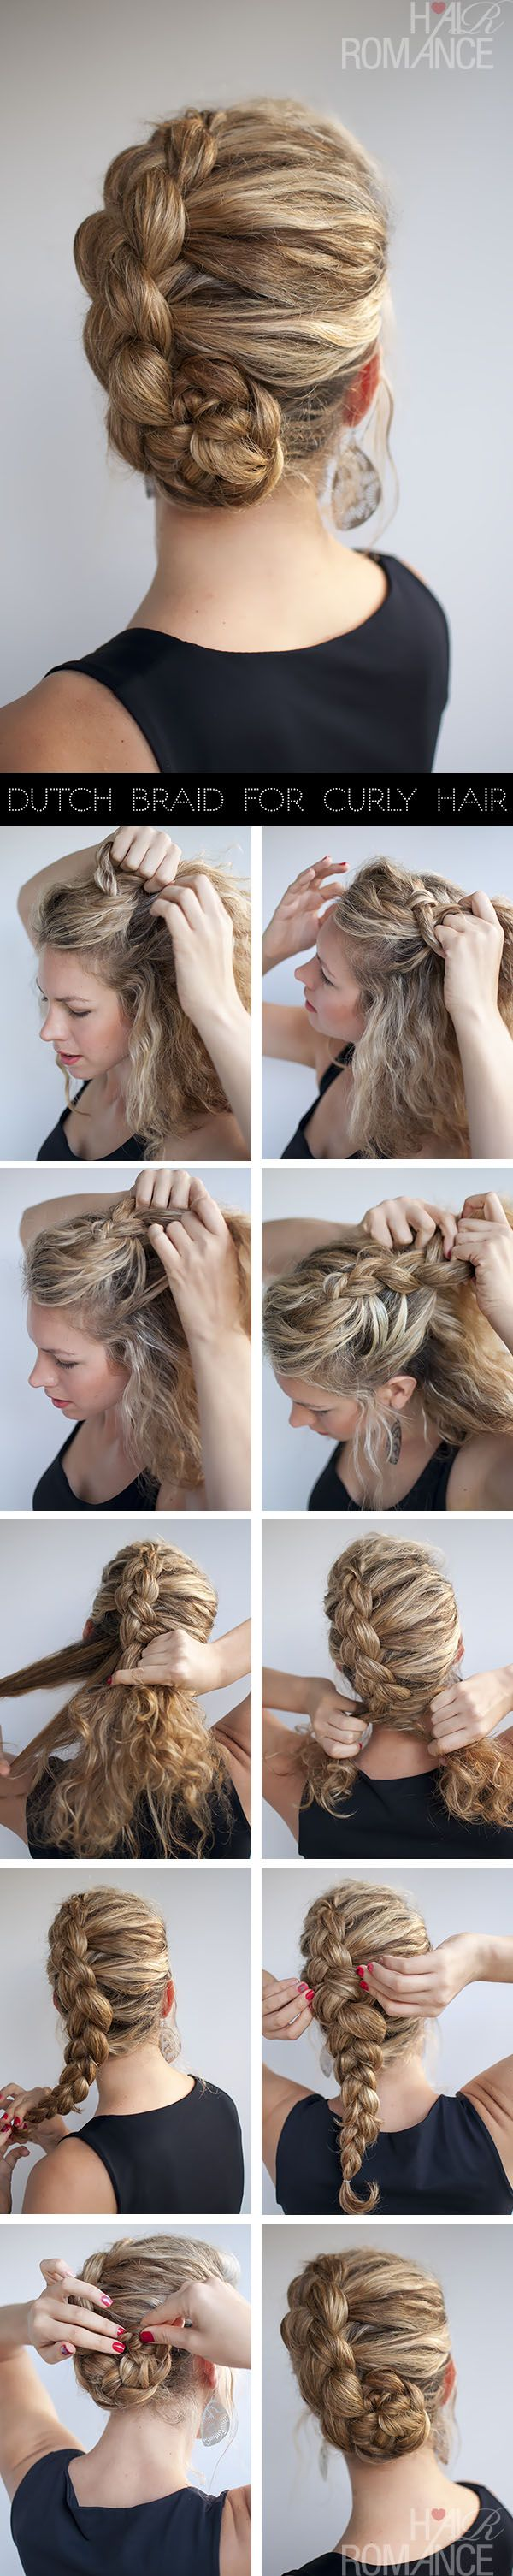 Dutch Braided updo tutorial ~ nice idea for a holiday or special event